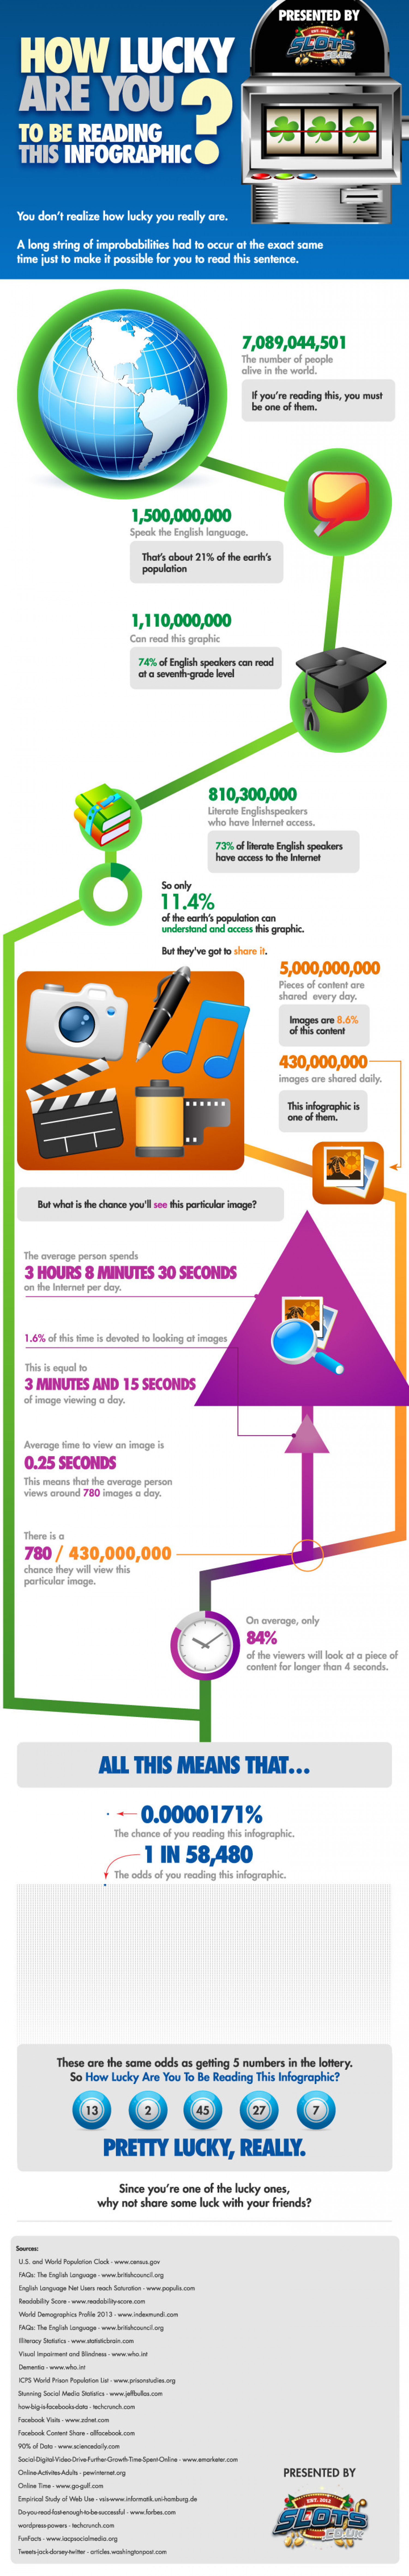 How Lucky Are You To Be Reading This Infographic? Infographic